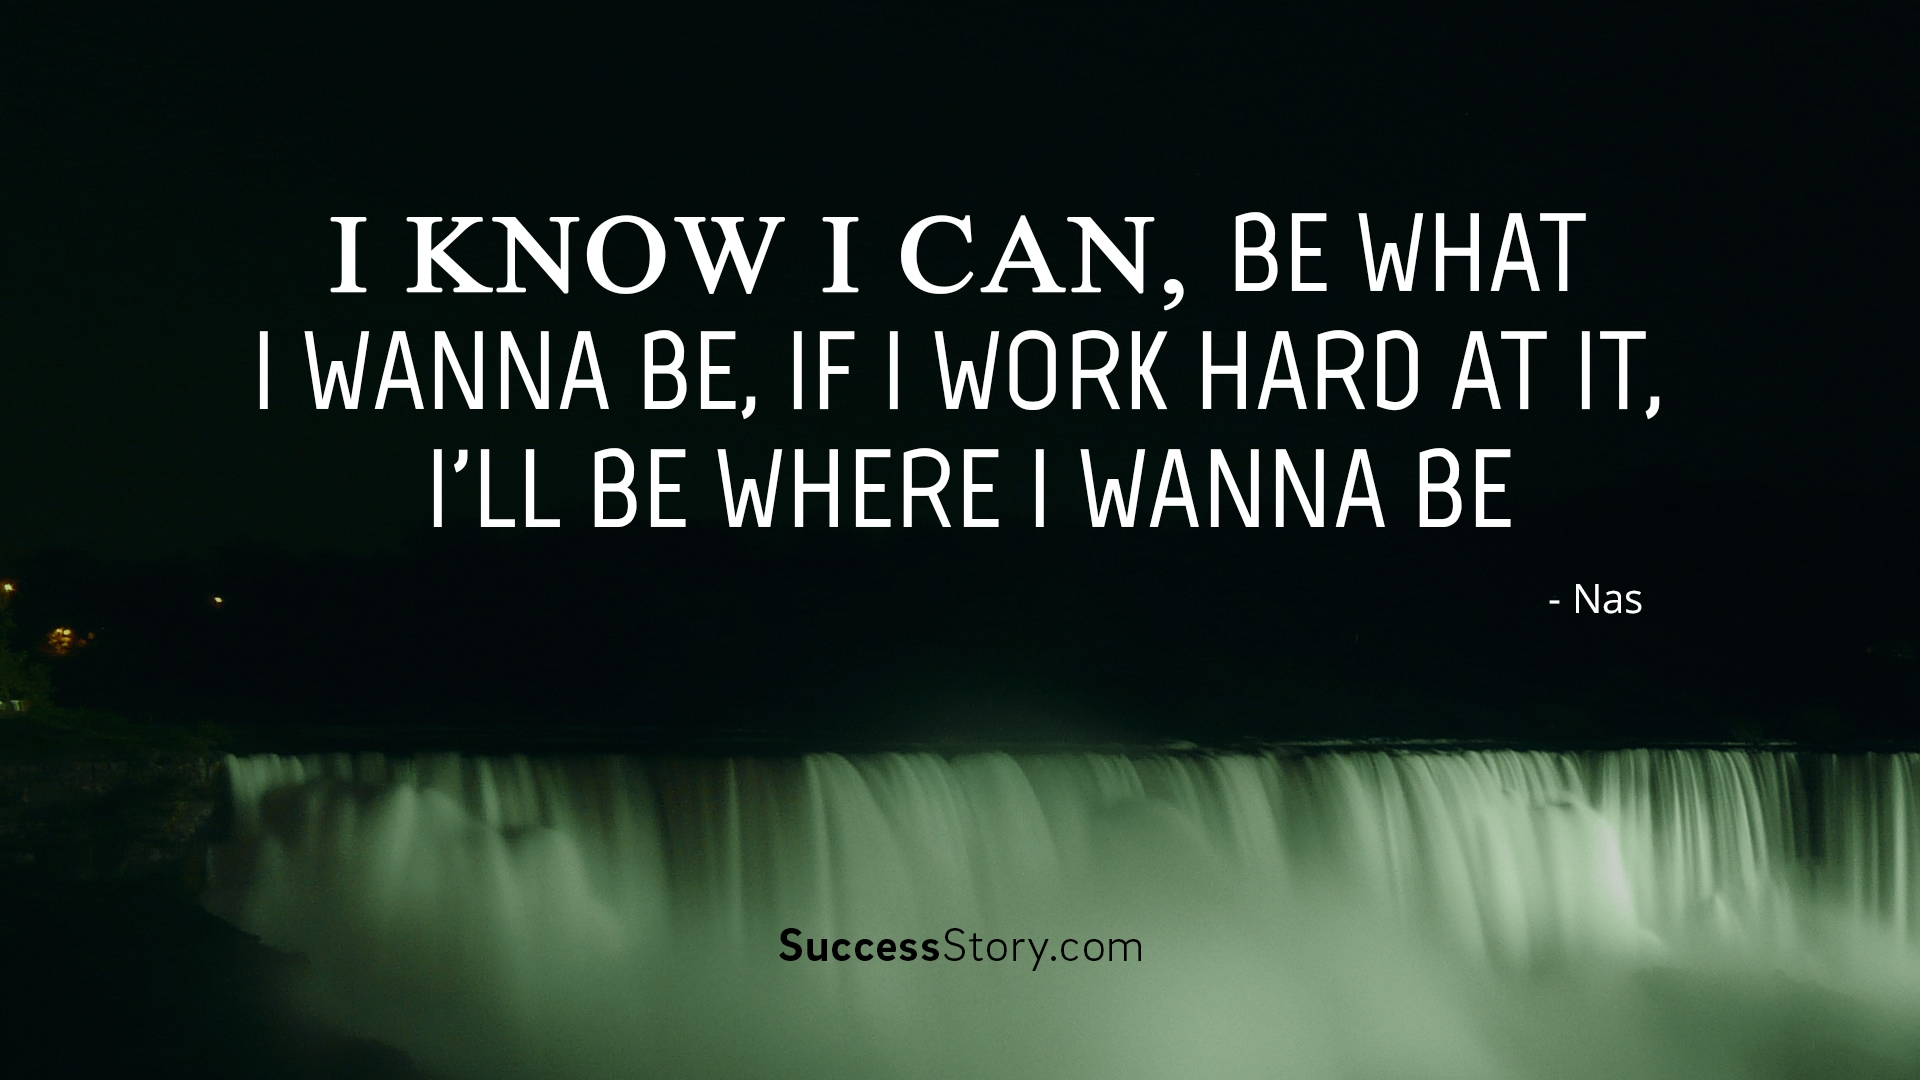 I know i can,